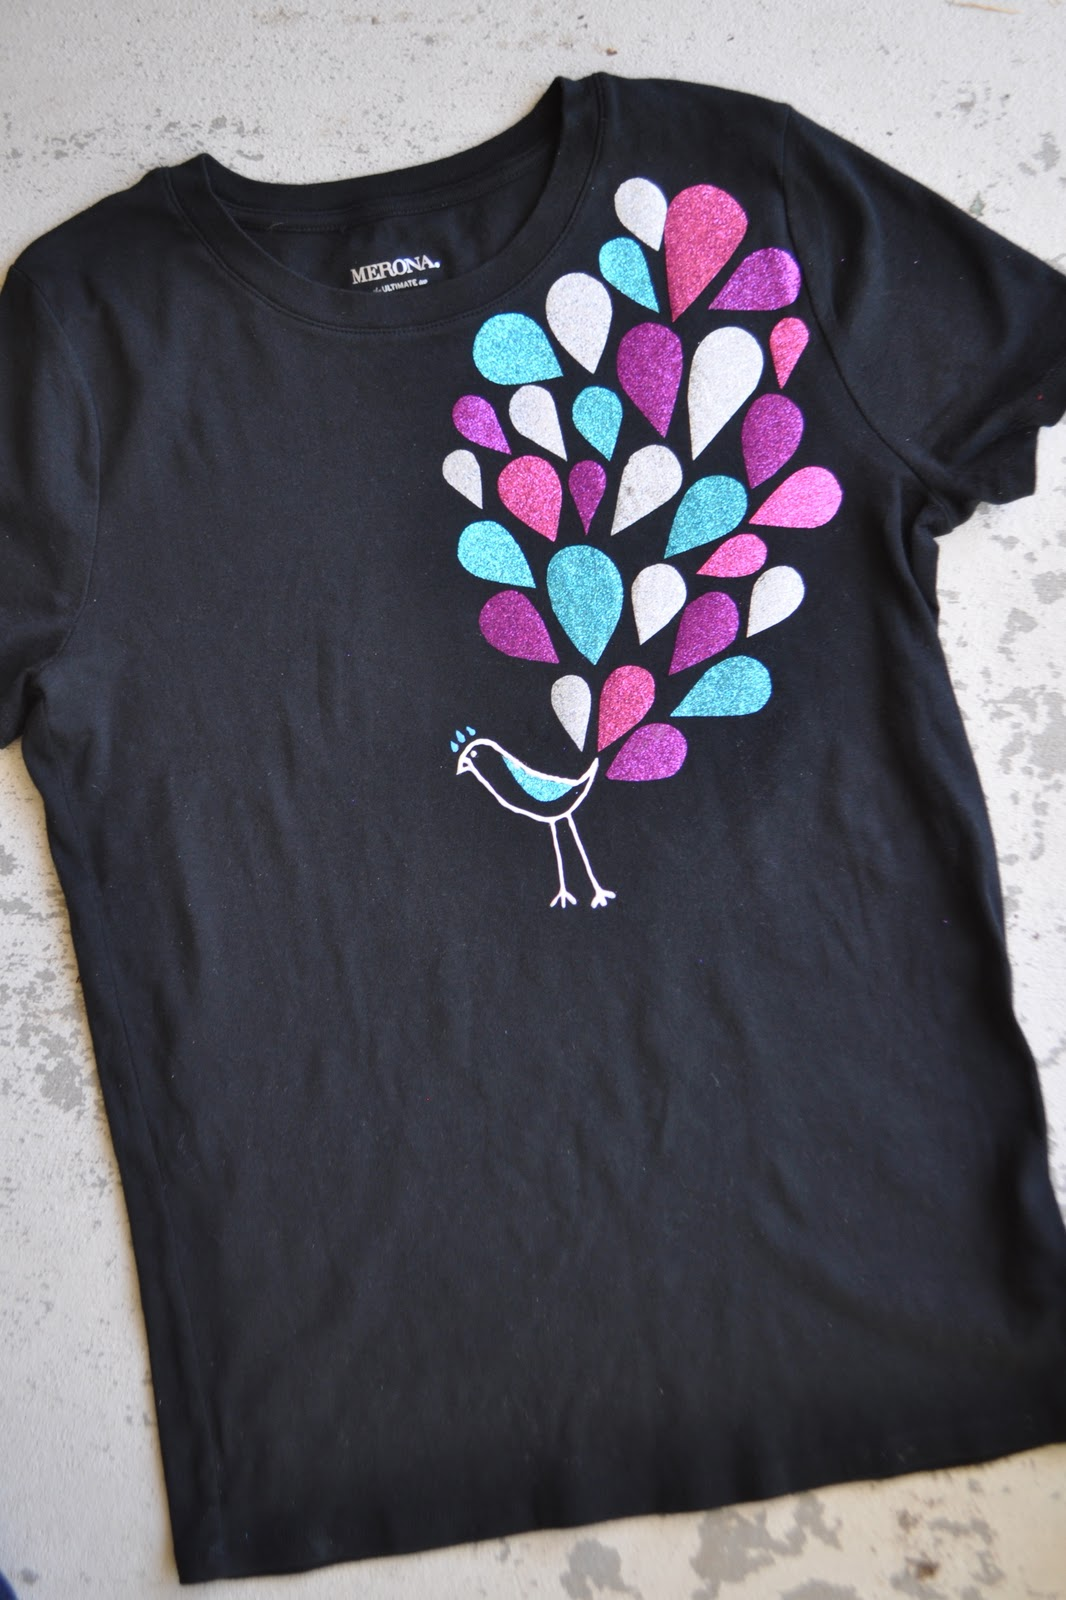 Design t shirt easy - Peacock Tee